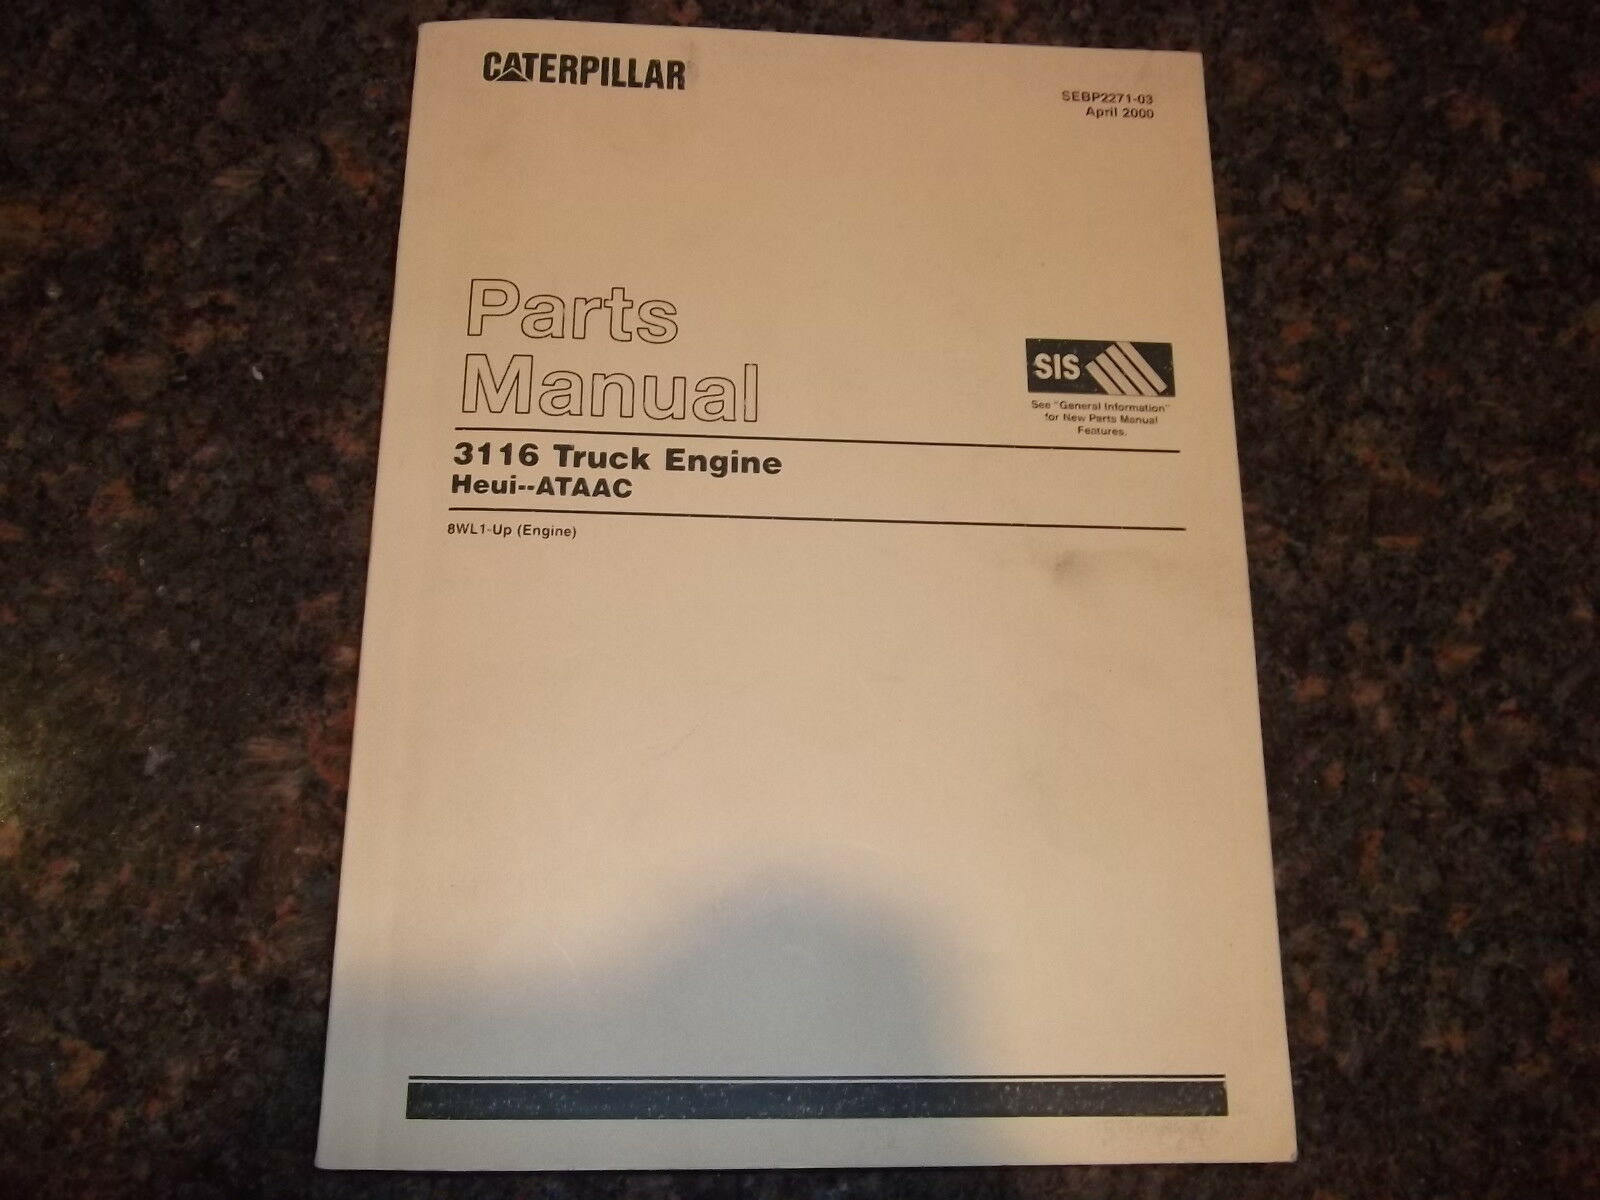 Cat Caterpillar 3116 Truck Engine Parts Book Manual S/n 8Wl1-Up 1 of 3Only  1 available ...